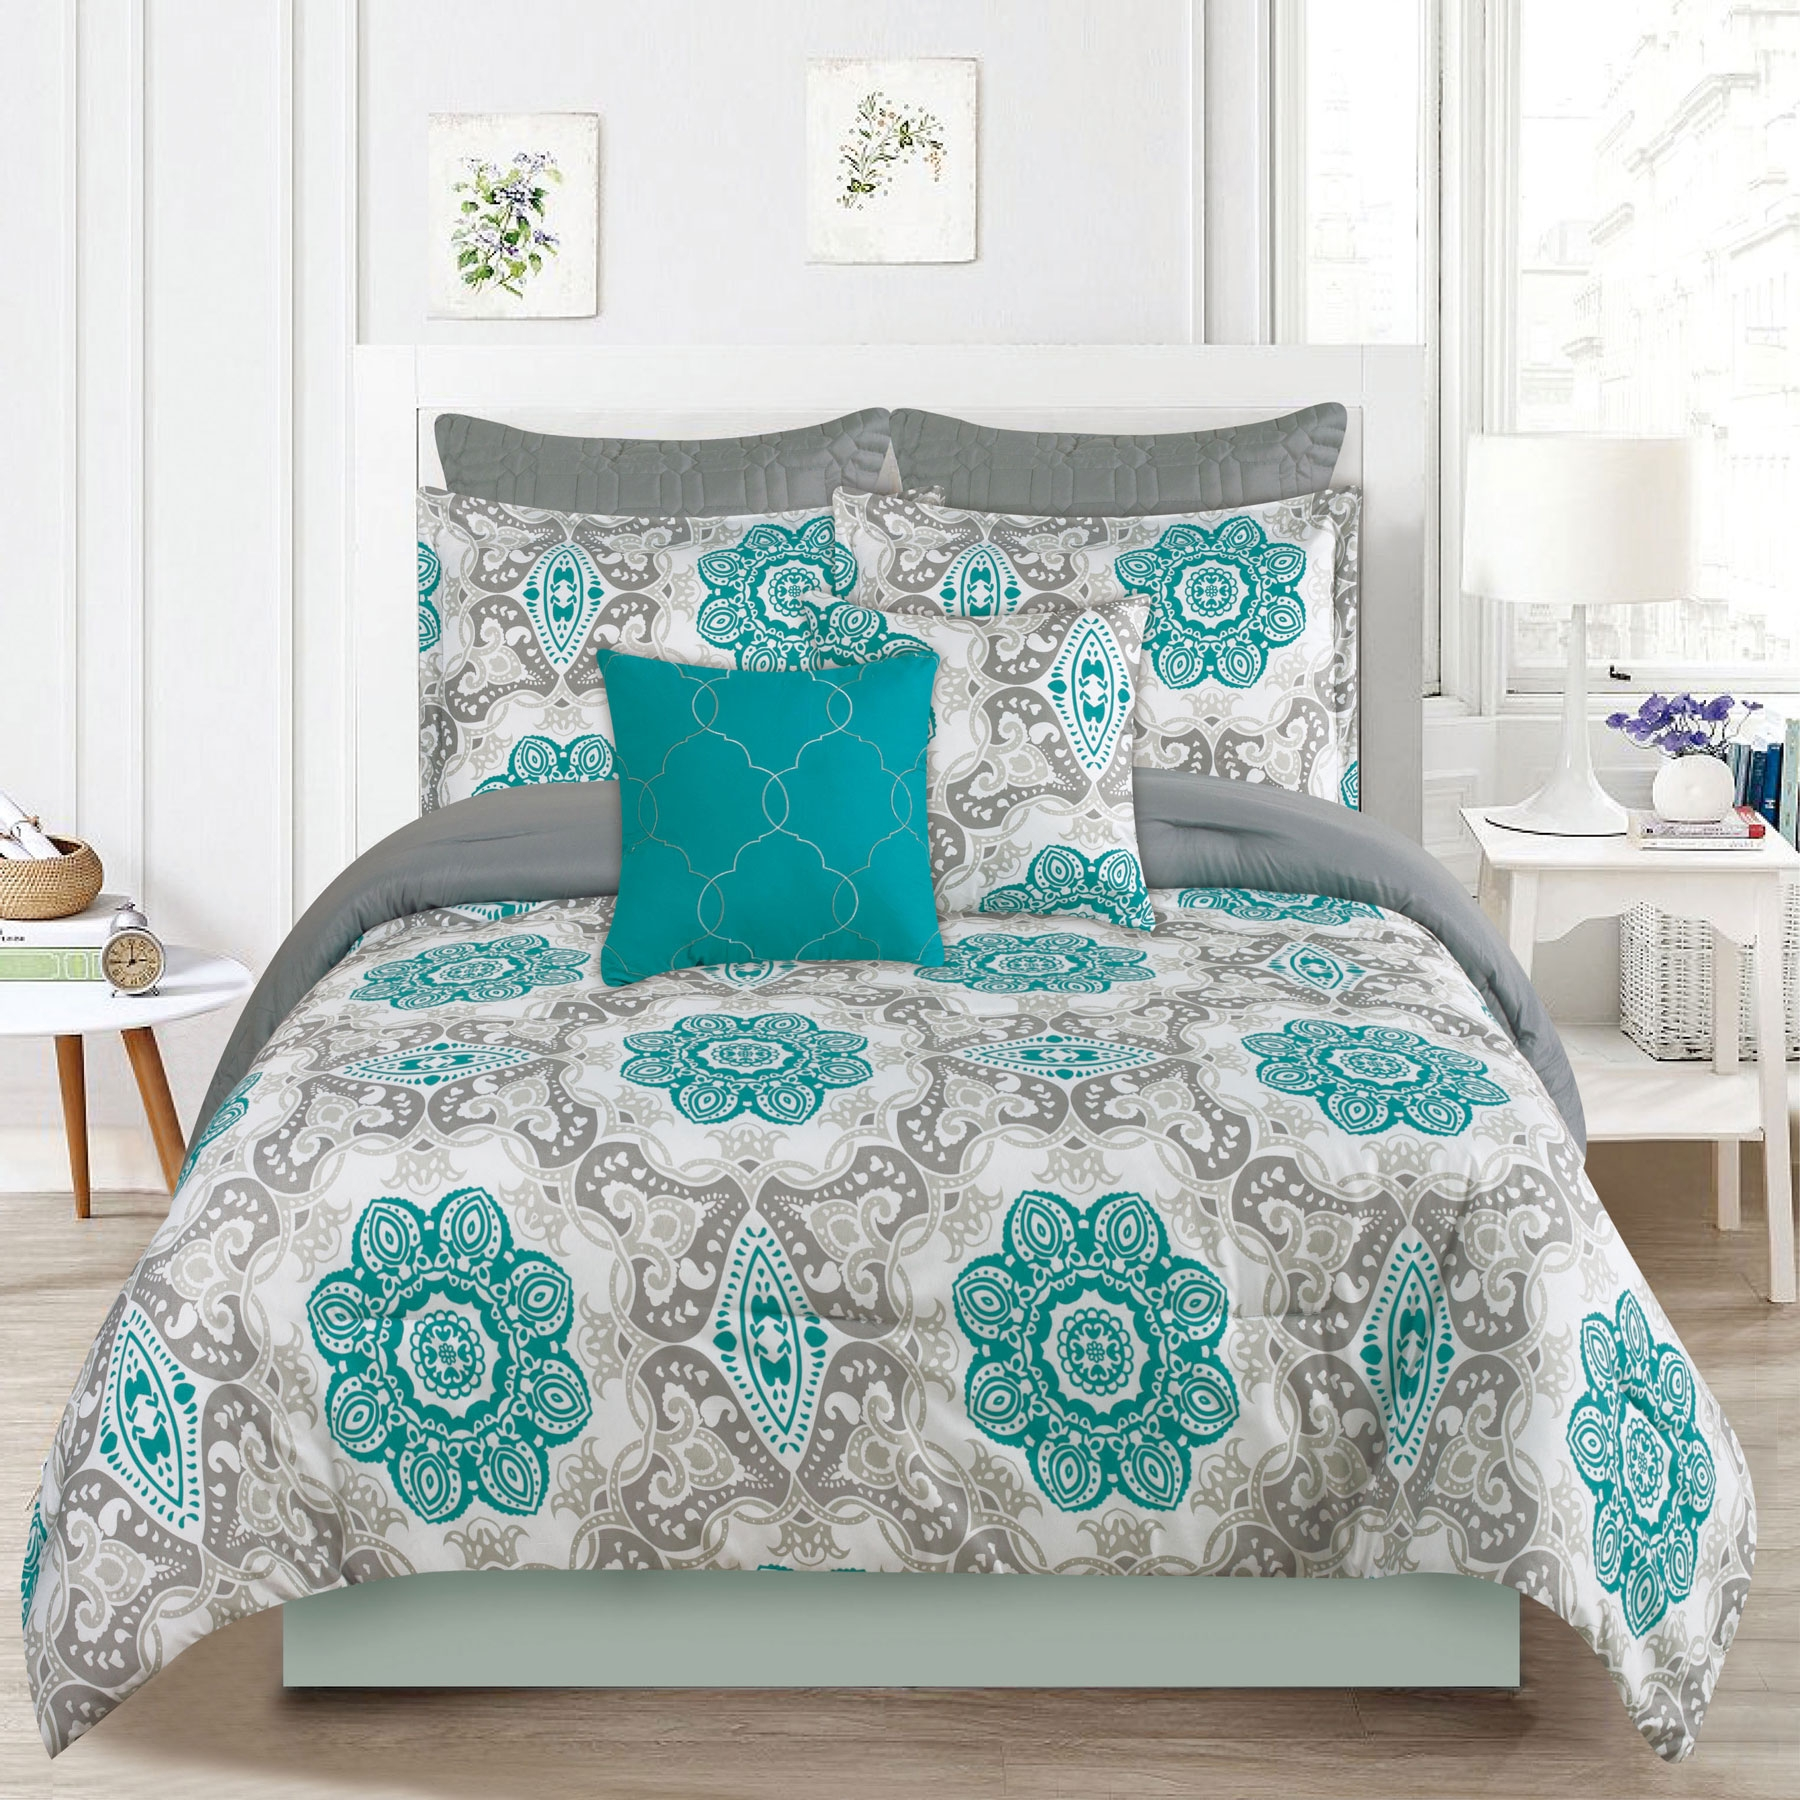 Bedding Comforter 7 Piece Queen Size Bed Set, Teal Blue and Gray Medallion